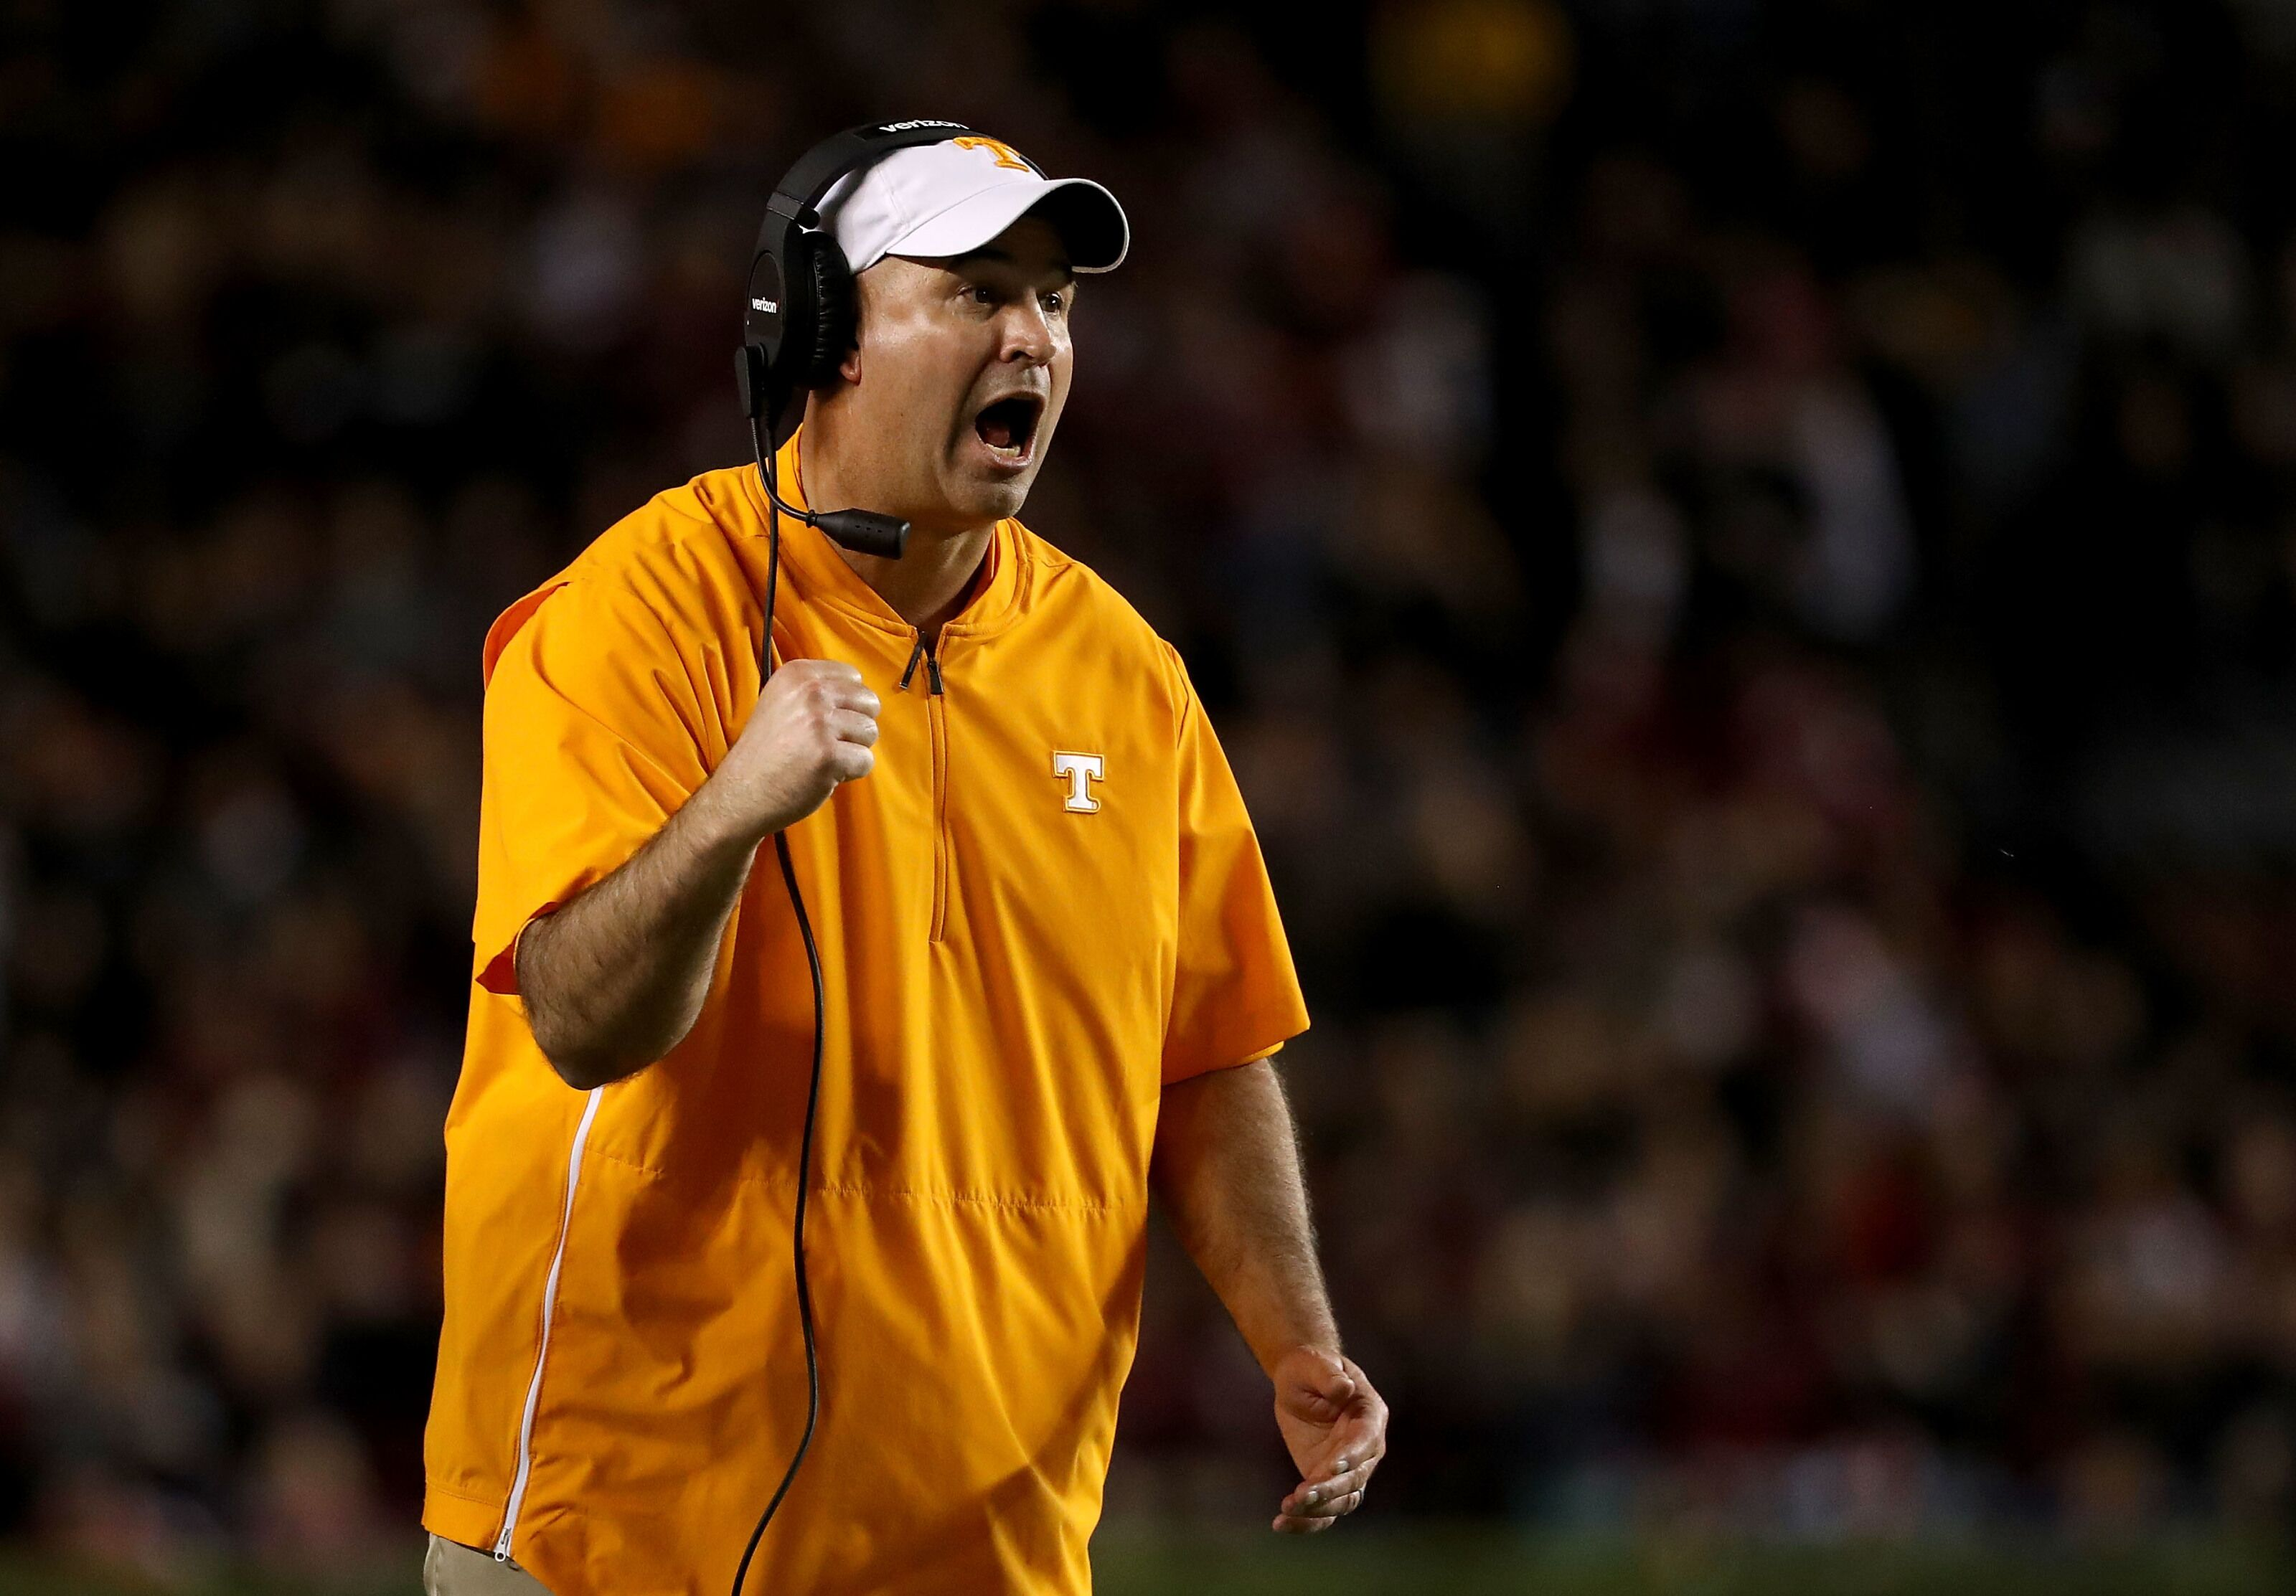 Tennessee football: 5 concerns with Vols revamped staff heading into 2019